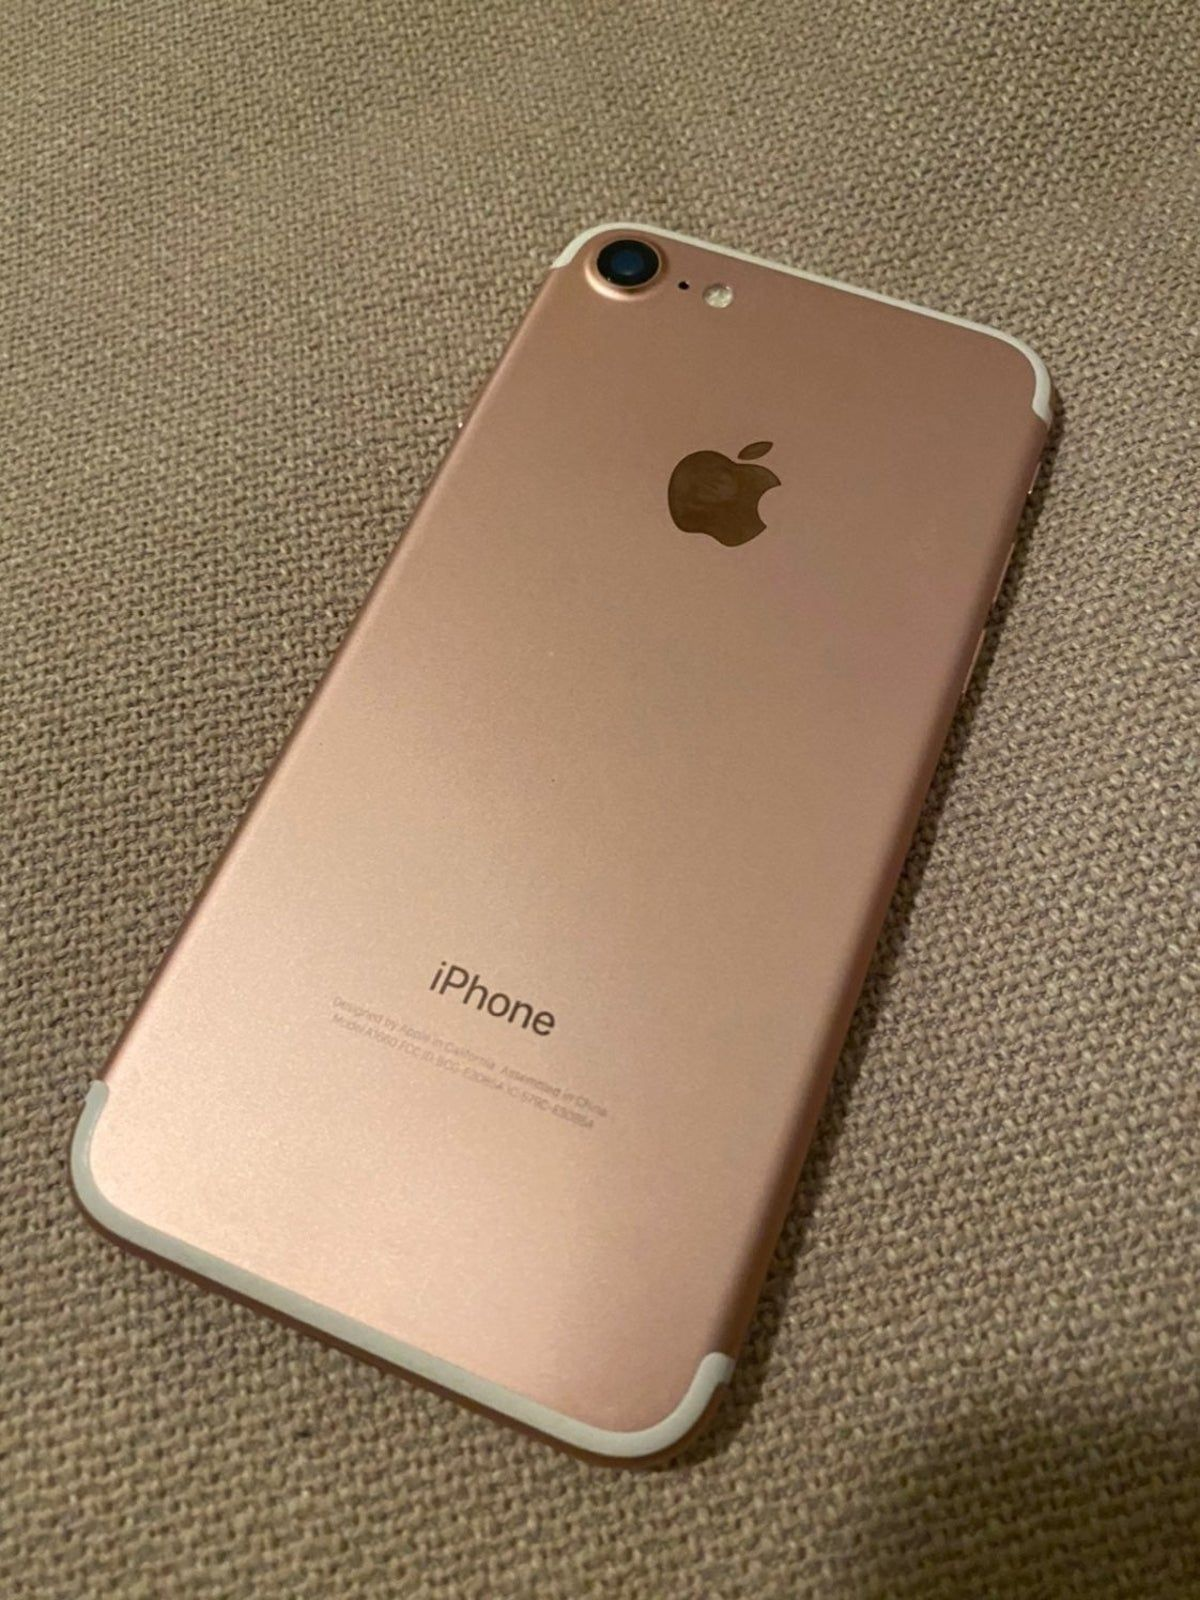 Pin By Djdbdbdbbdbd On Iphones Hermosos In 2021 Iphone 7 Gold Iphone 7 Rose Gold Iphone